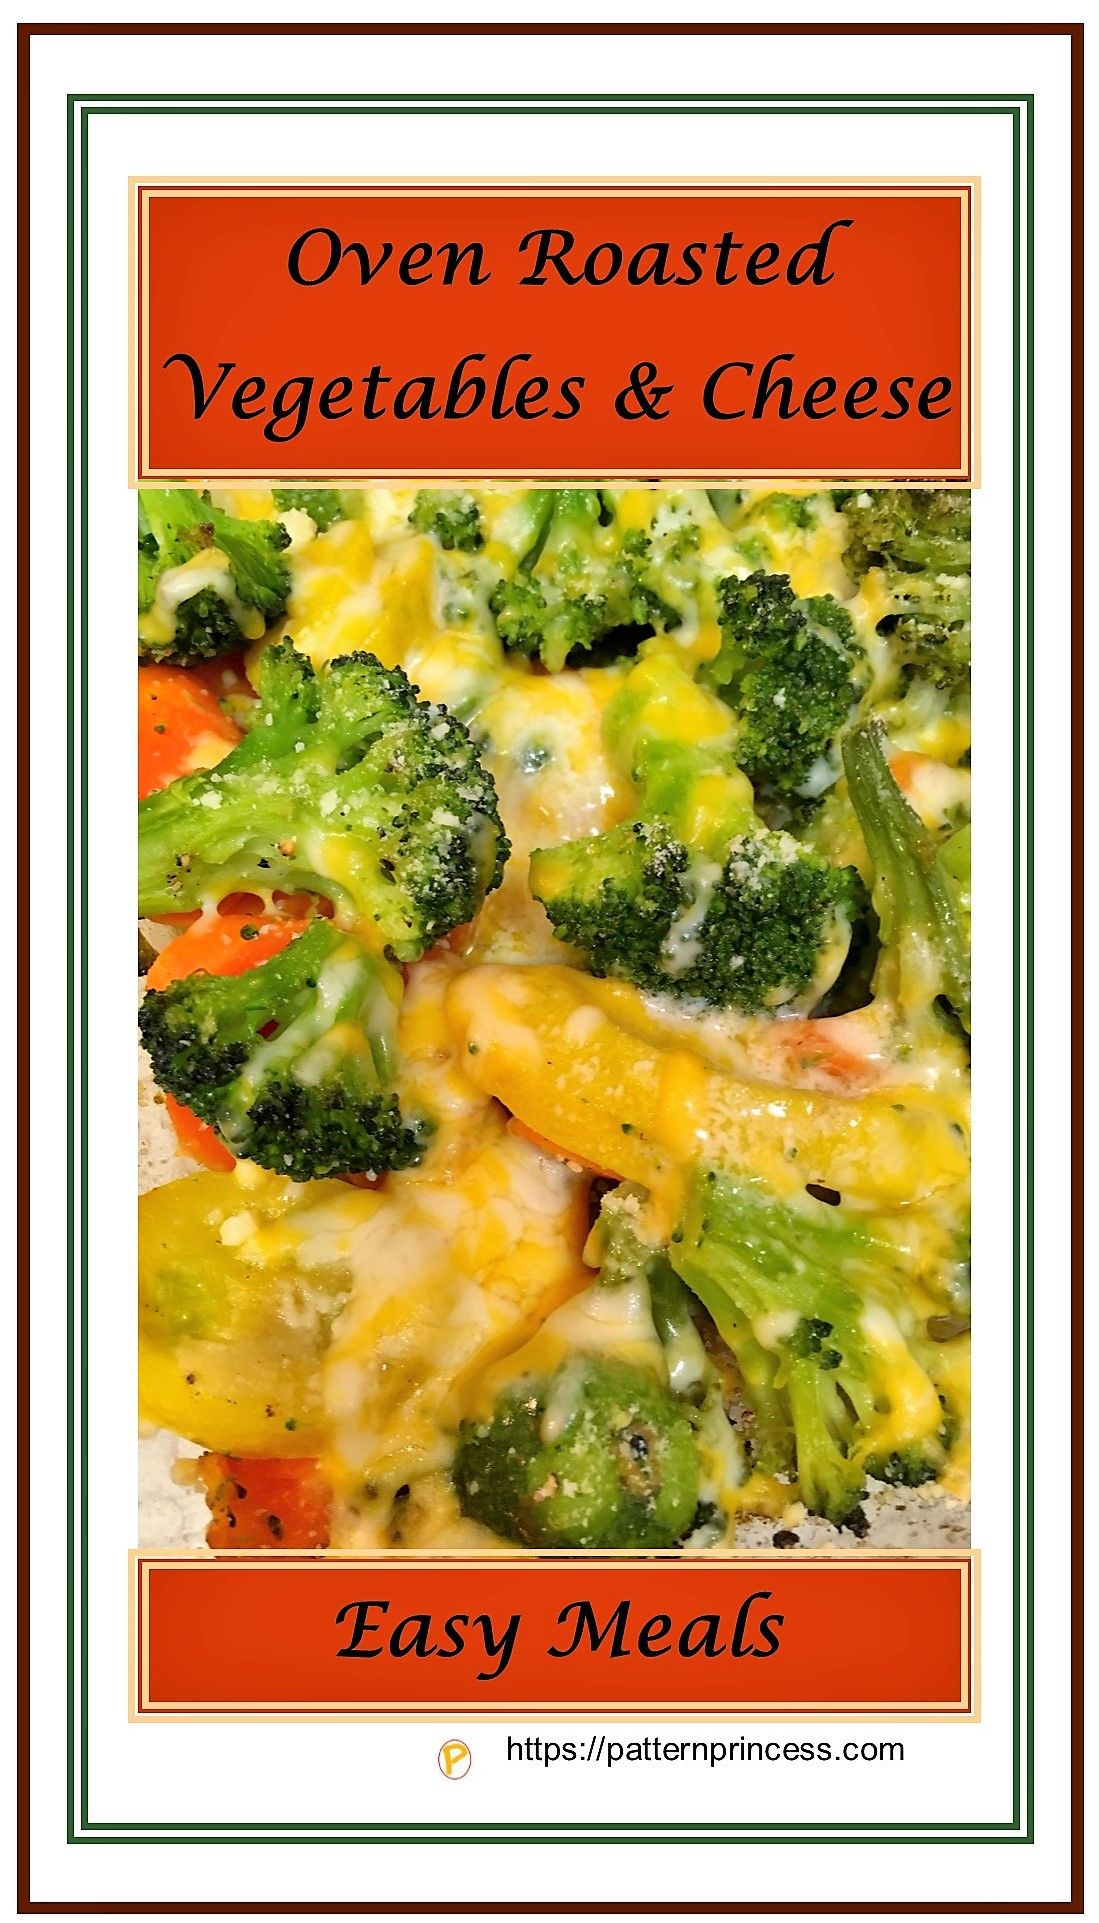 Oven Roasted Vegetables amp Cheese Yes, you can do oven roasted vegetables and cheese using frozen ve